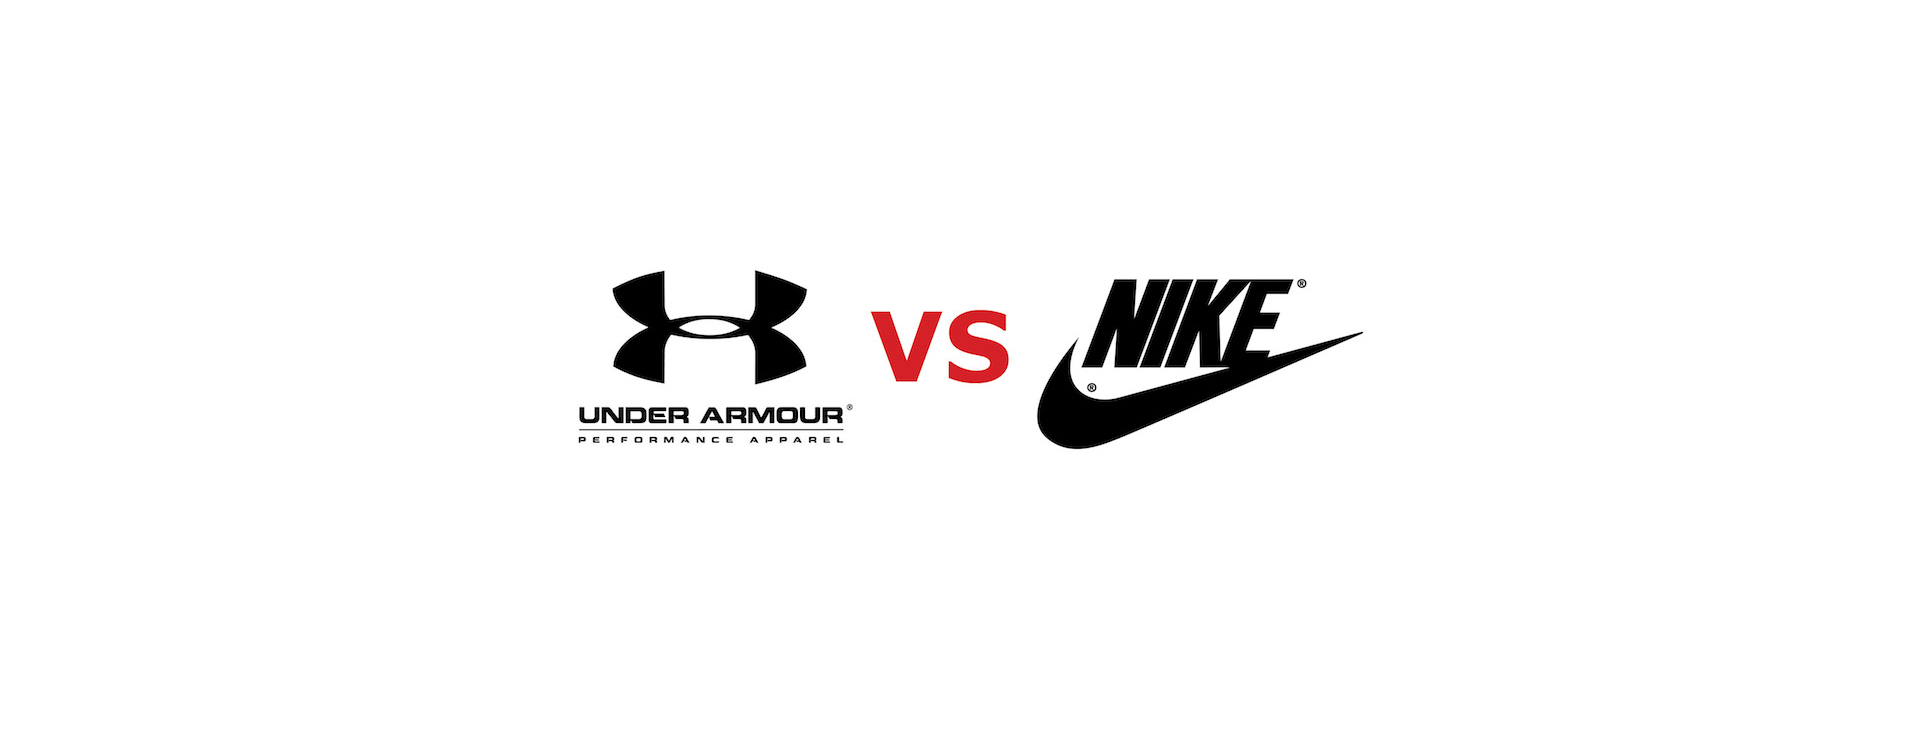 Sympton tobillo constructor  UNDER ARMOUR vs NIKE | La amenaza a un reinado